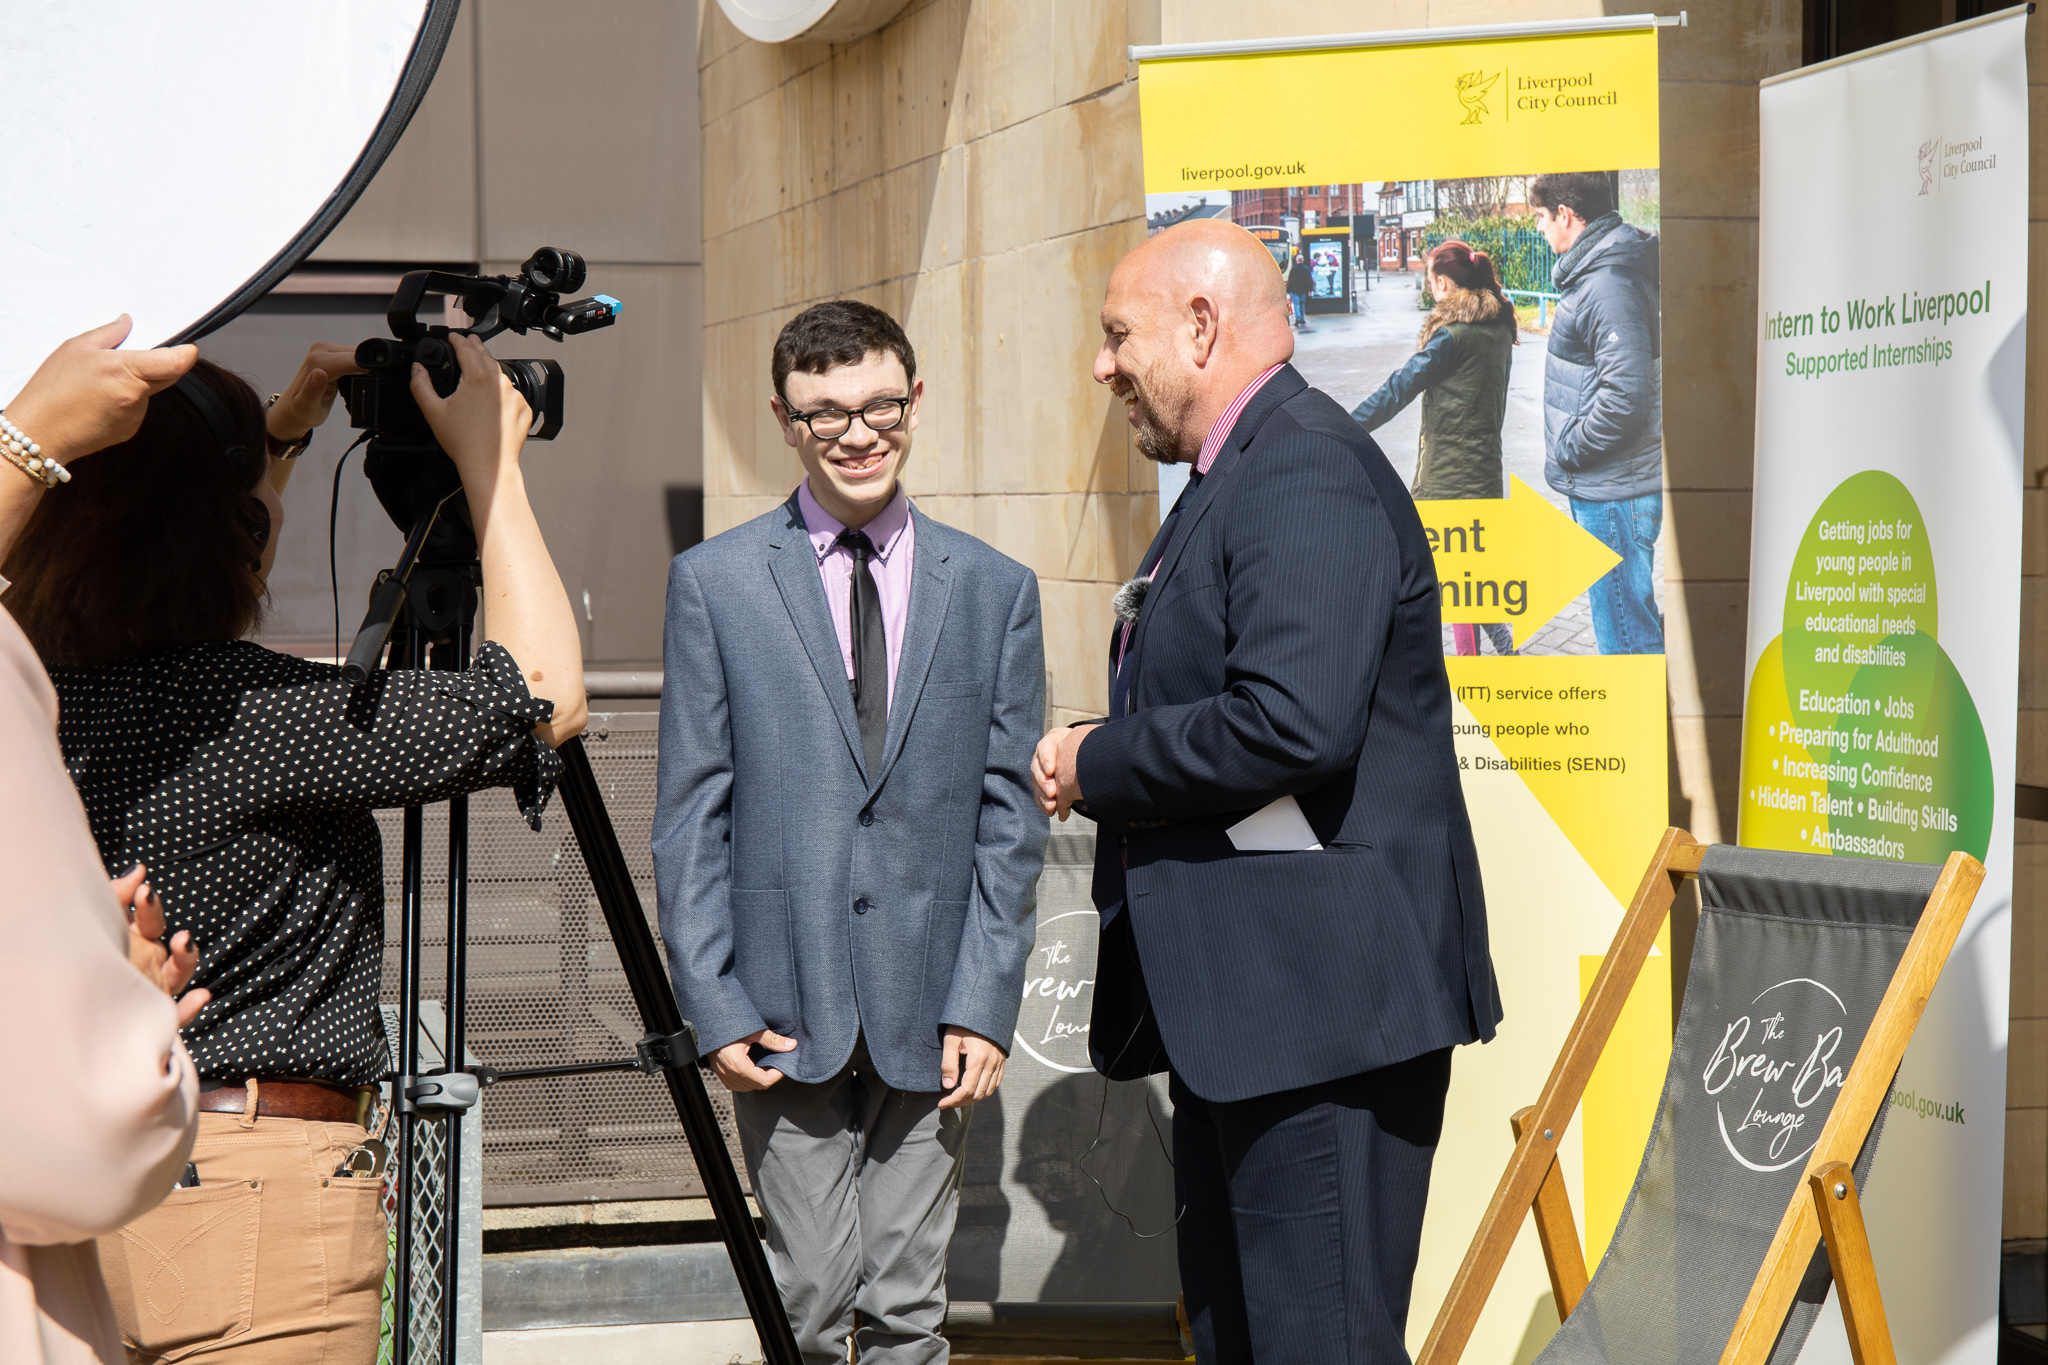 Harry, supported intern from Sandfield Park School based at National Museums Liverpool interviewing Steve Reddy, Director of Children and Young People's Services, Liverpool City Council.